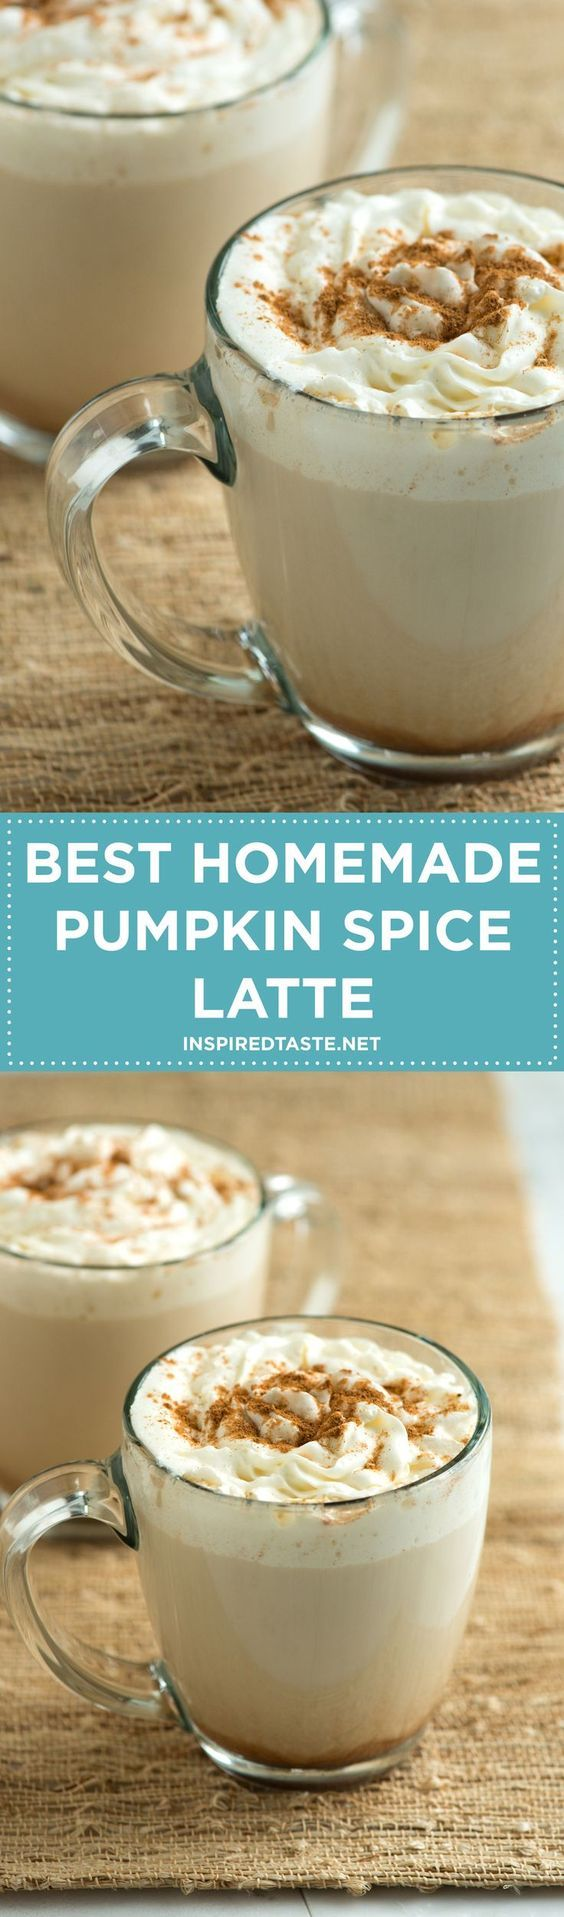 Homemade (and EASY) Pumpkin Spice Latterecipe